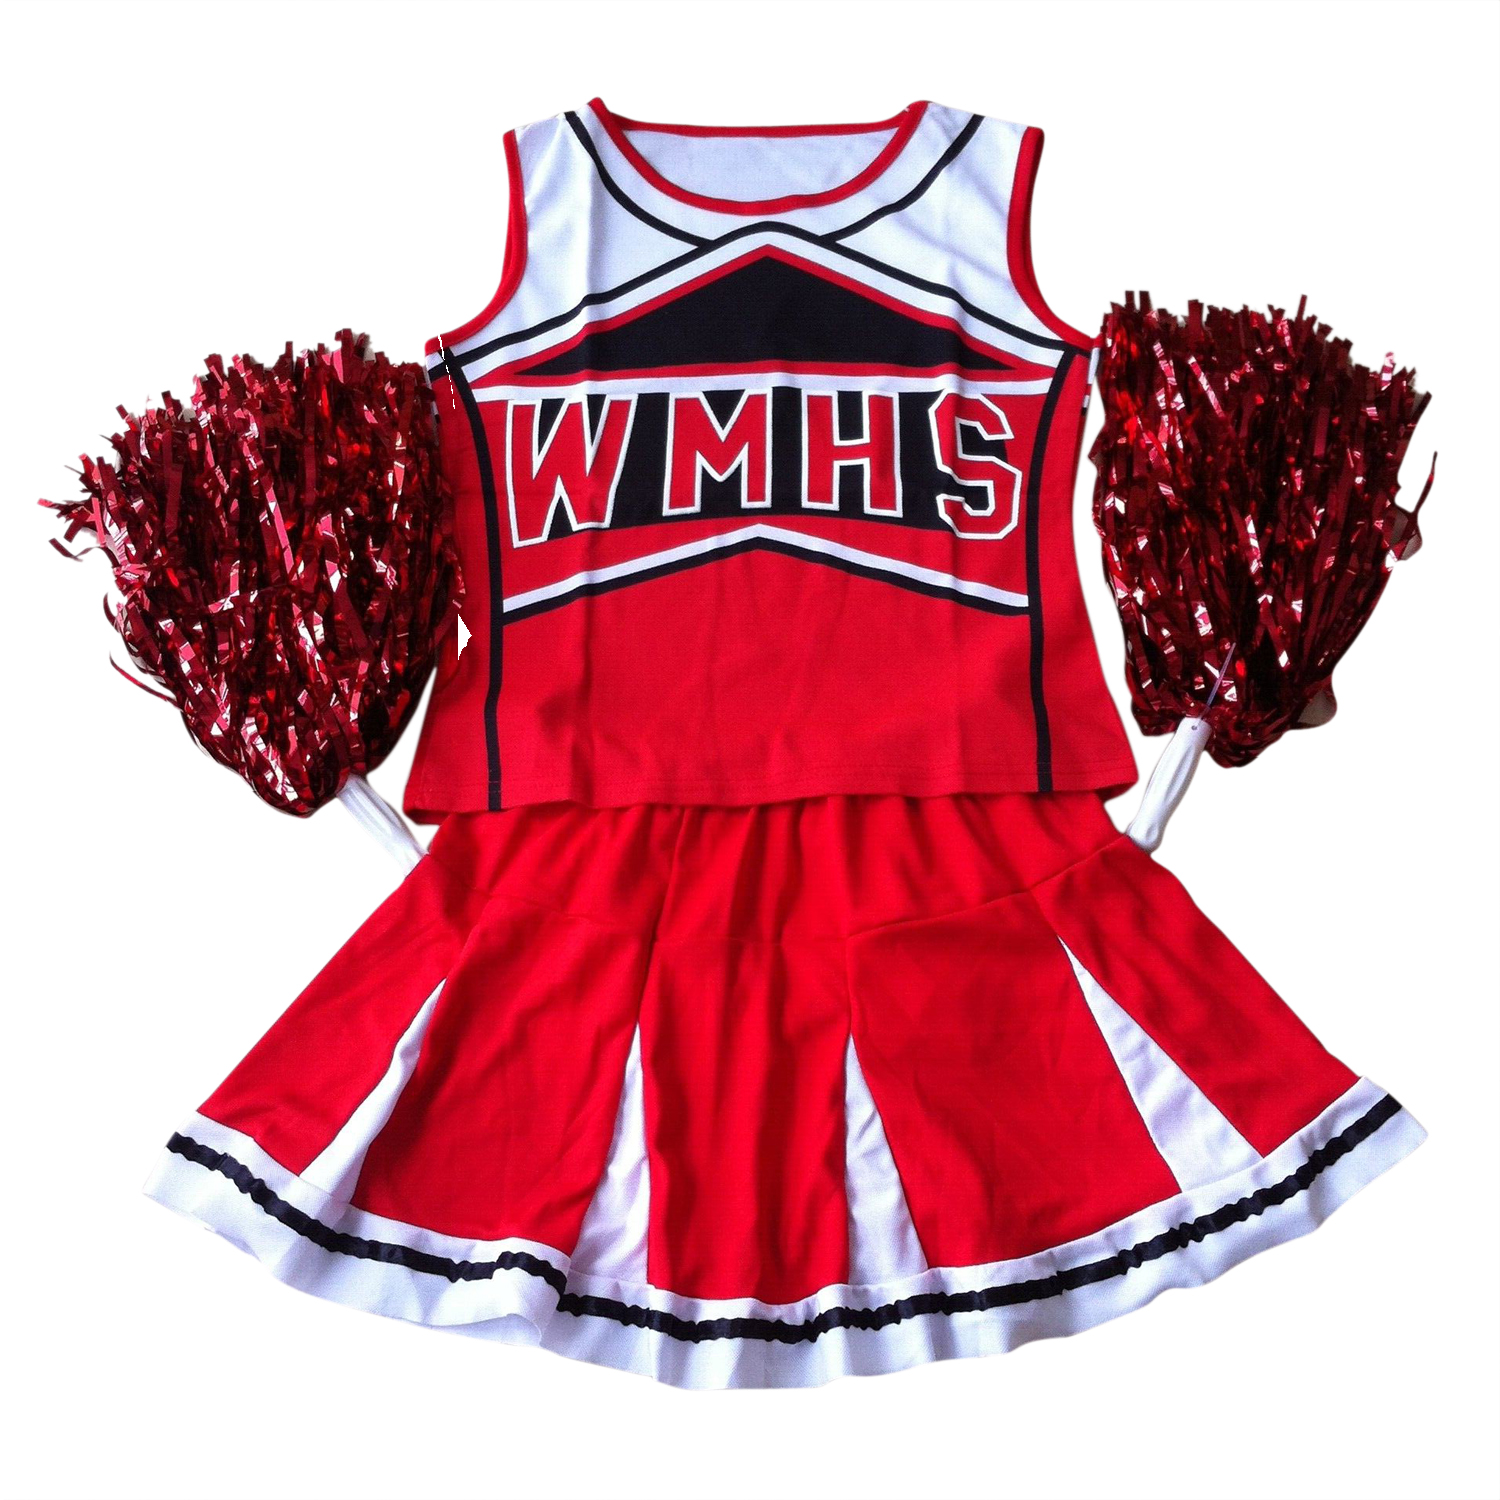 Tank Top Petticoat Pom-pom Cheerleader Cheer LeadersS/M/ L  2 Piece Suit New Red Costume